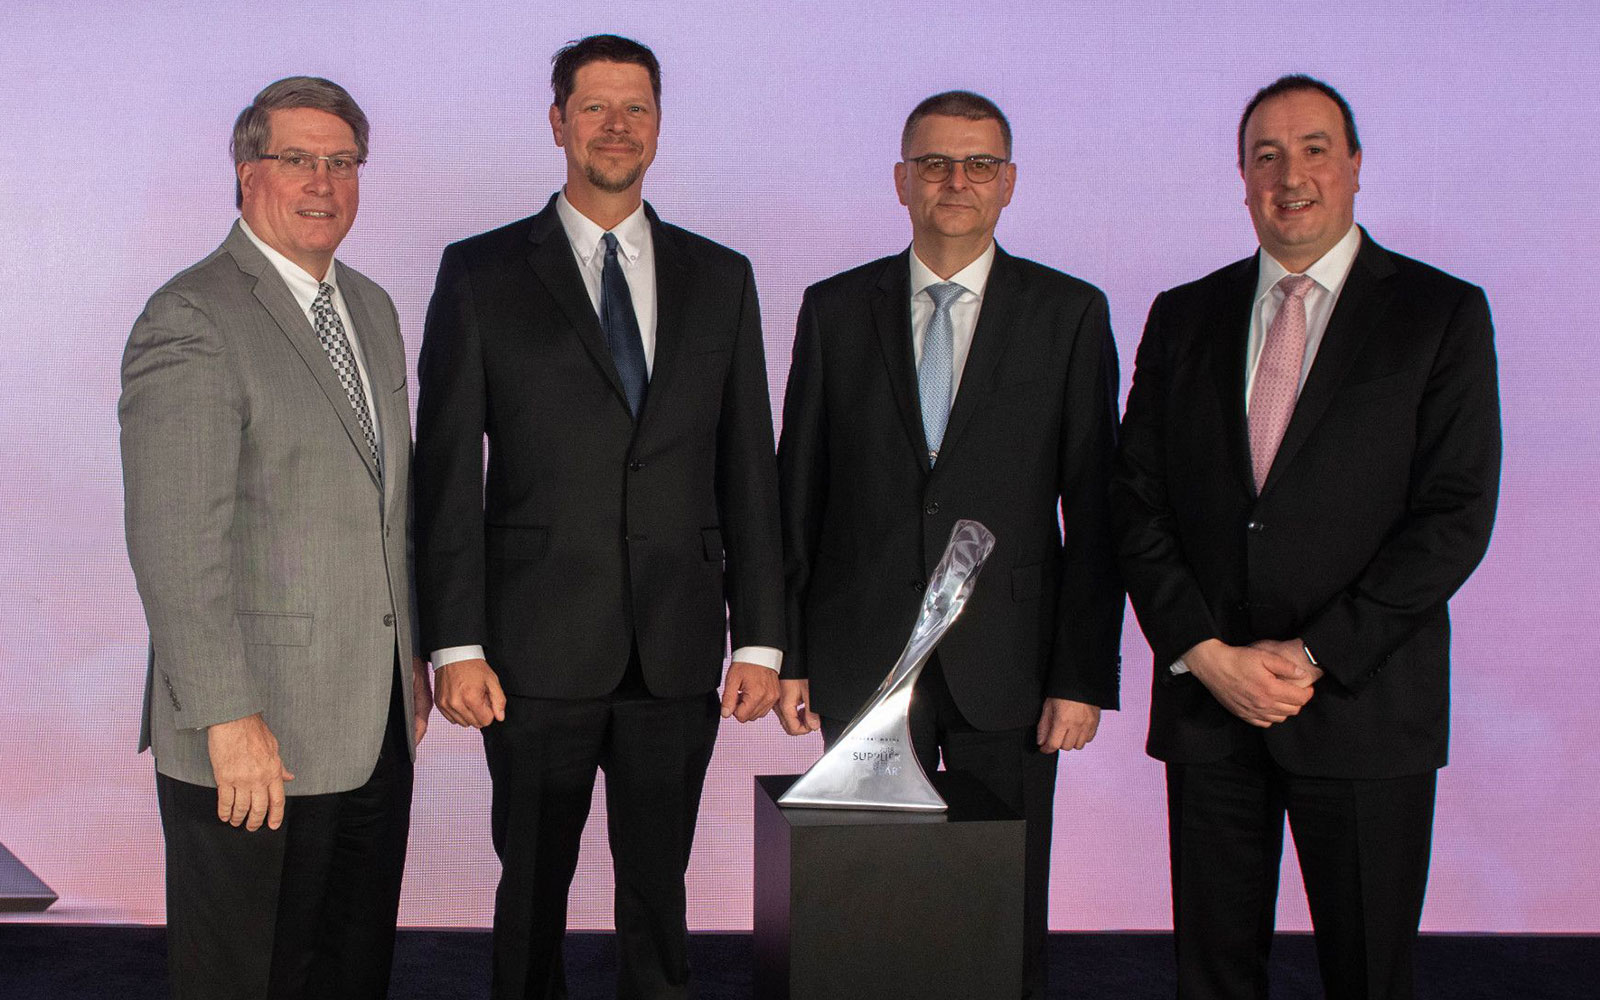 HELLER scores hat-trick at the GM Supplier of the Year awards